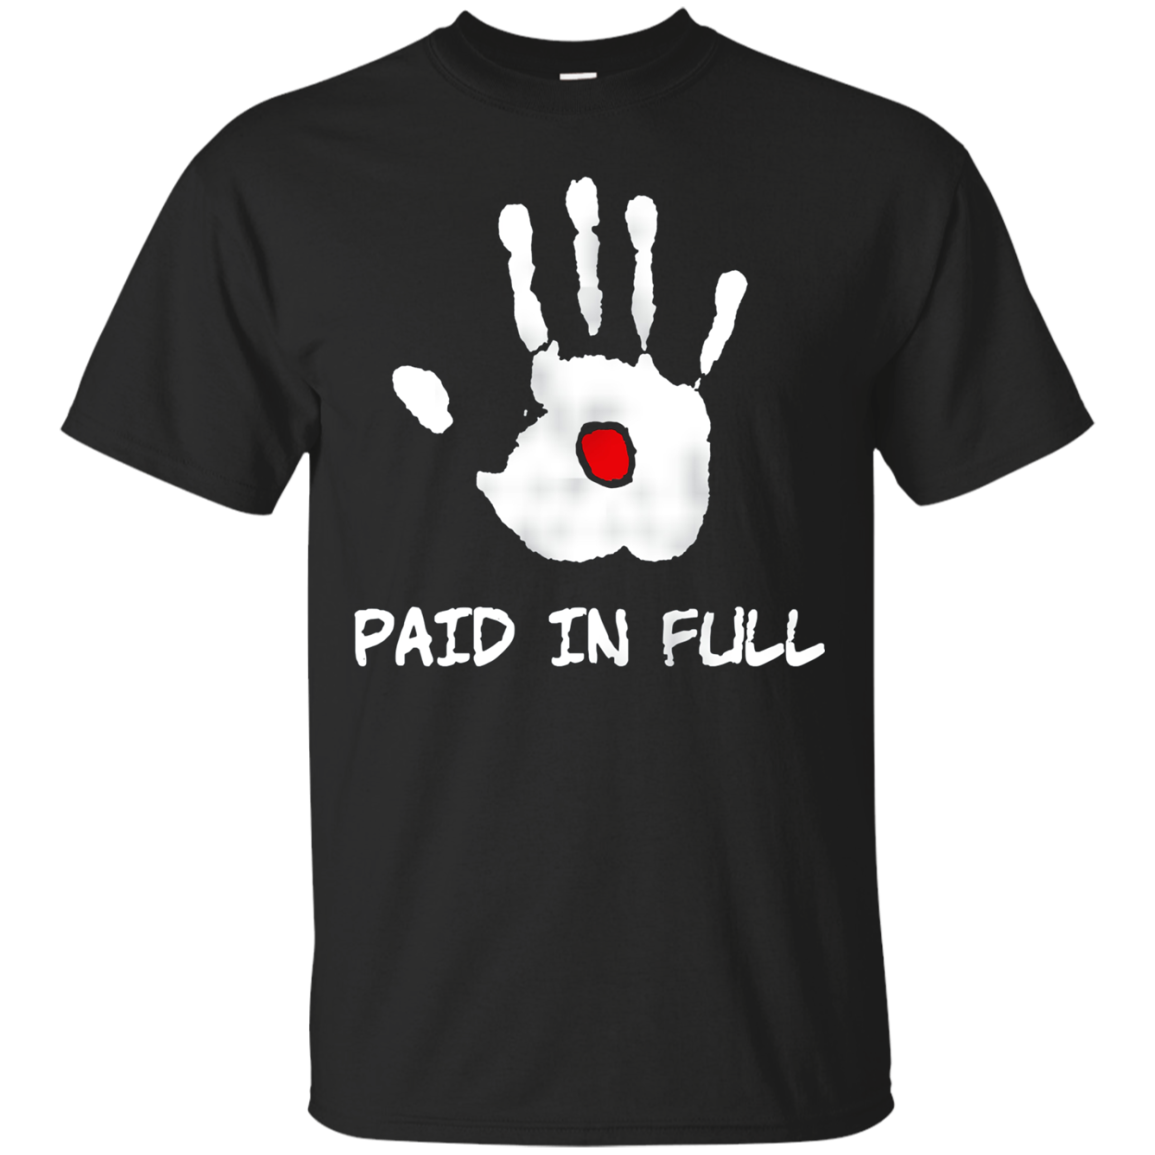 Jesus paid in full Shirts gift for Lent, Easter